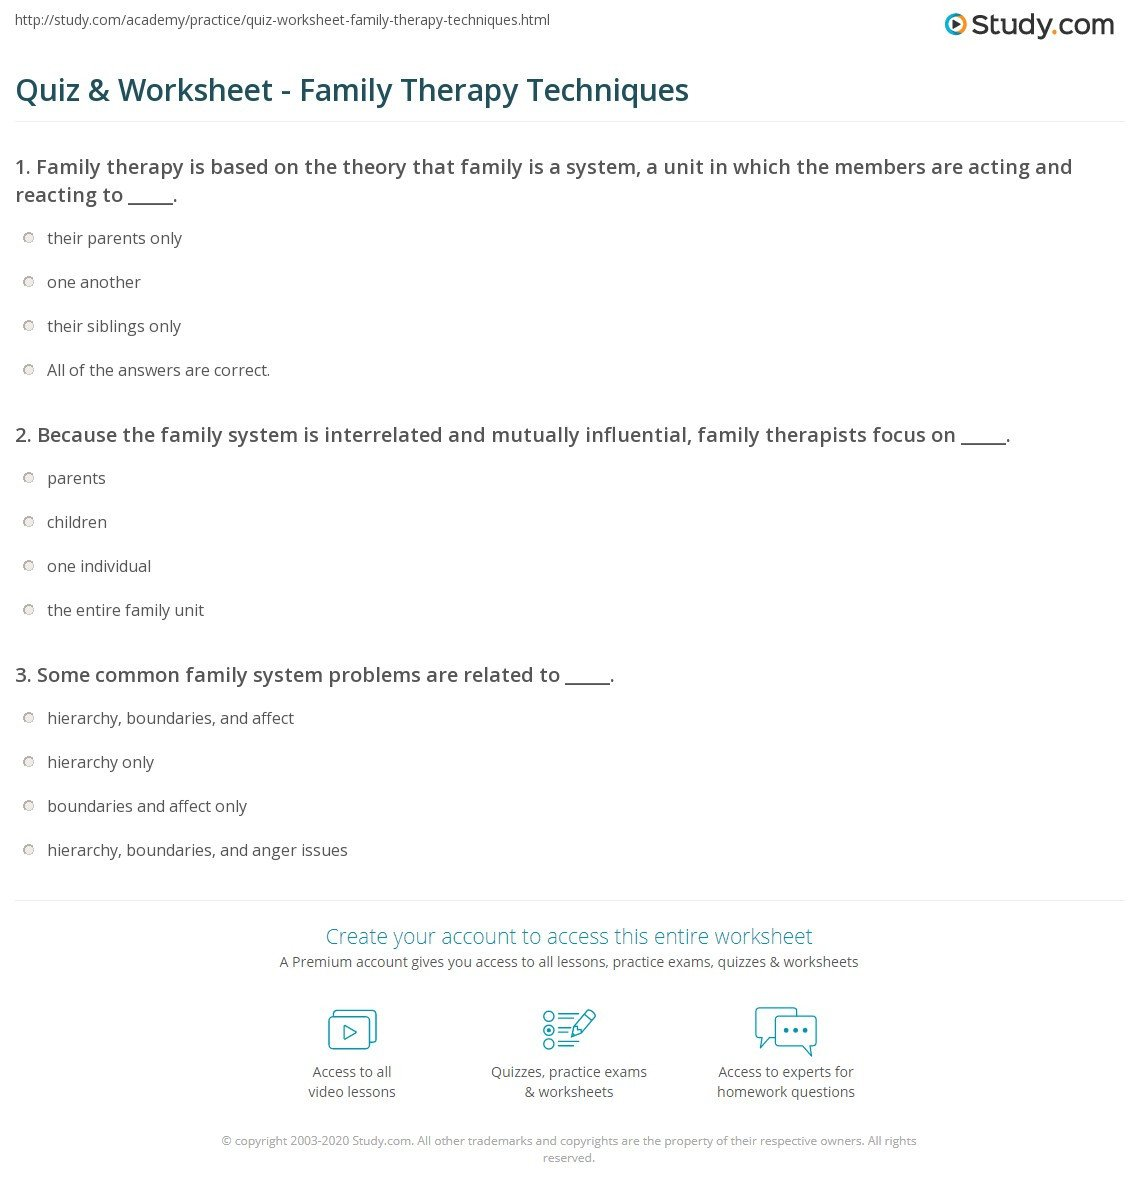 Time and Measurement Worksheets Quiz Worksheet Family therapy Techniques Study Worksheets